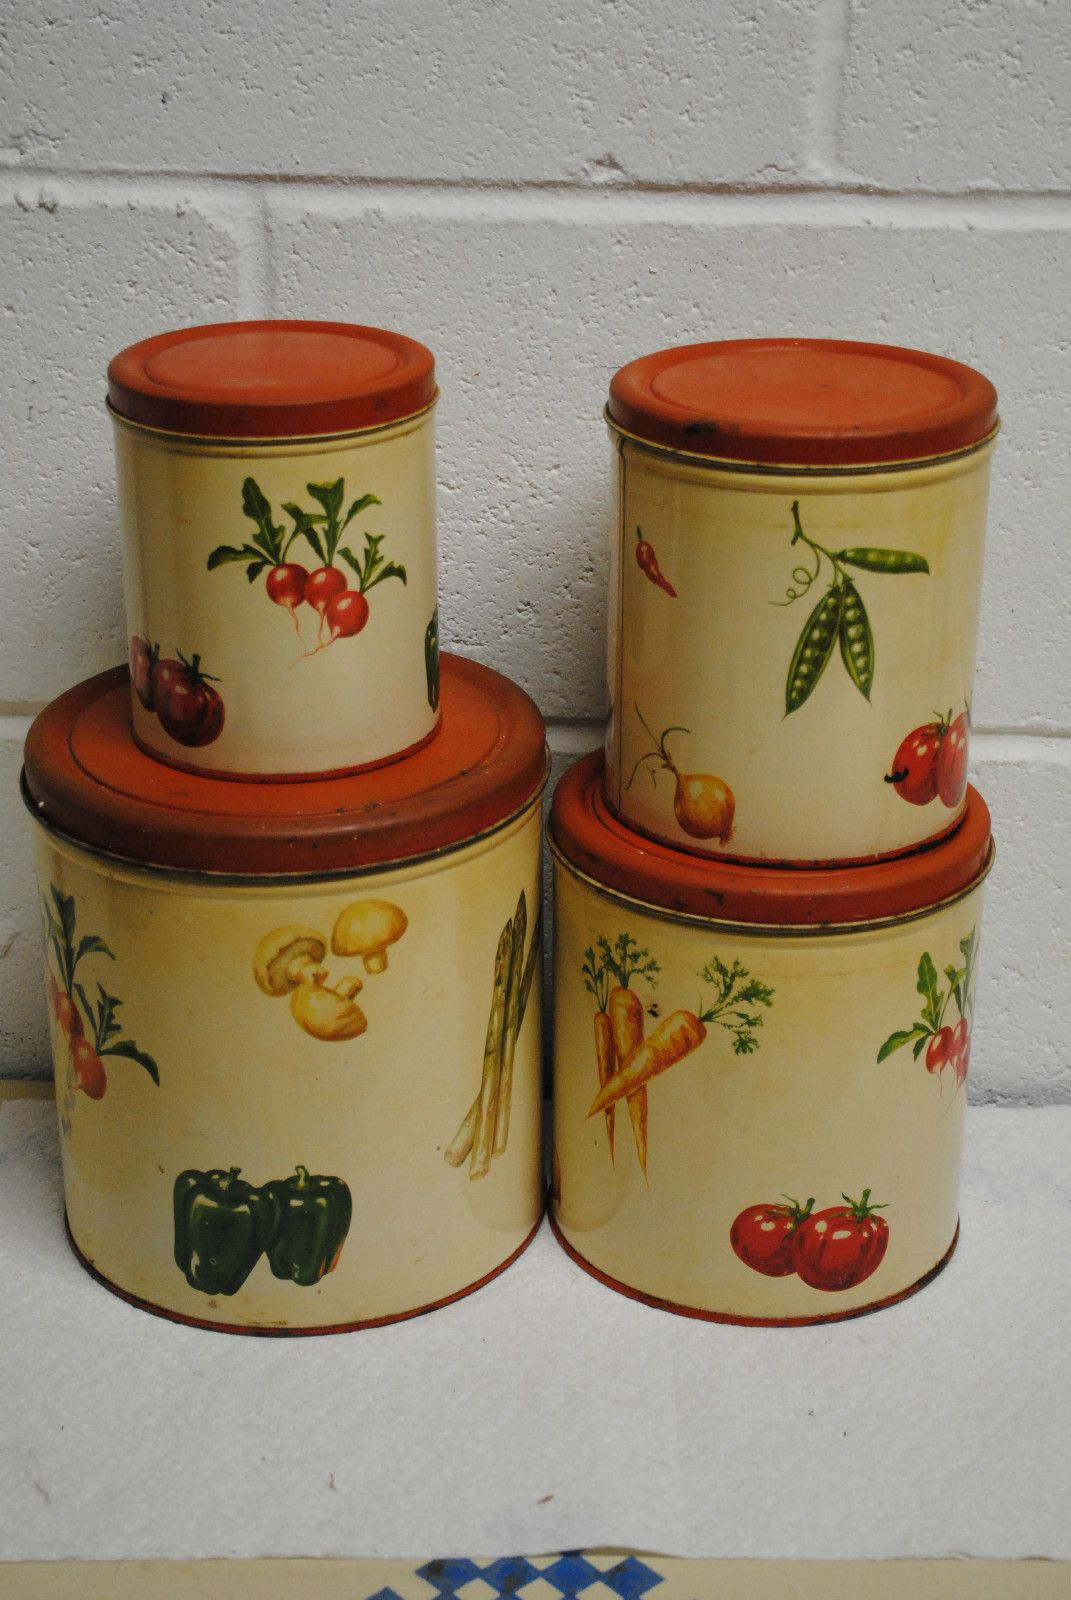 prodigious Vintage Canister Sets Ebay Part - 5: Vintage Decoware Kitchen Canisters Set of 4 Vegetables | eBay